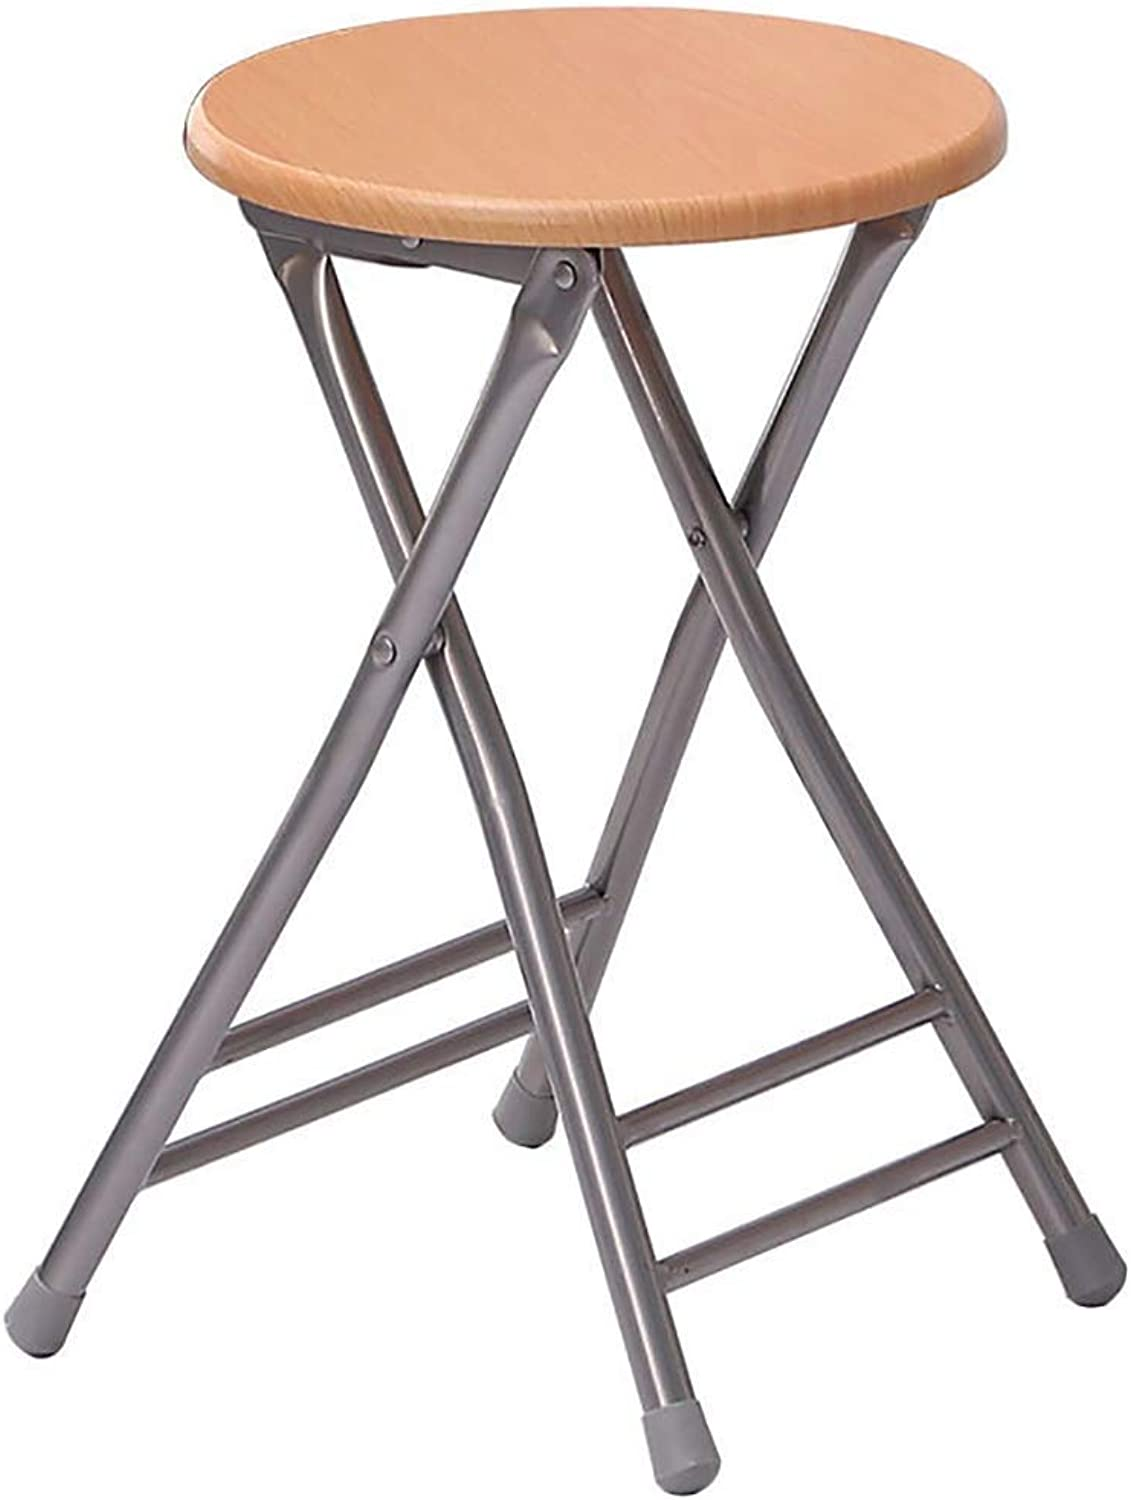 Folding Stool Portable Folding Stool, Multipurpose Durable Stool Sturdy Folding Stool for Indoor Outdoor Use GYJ